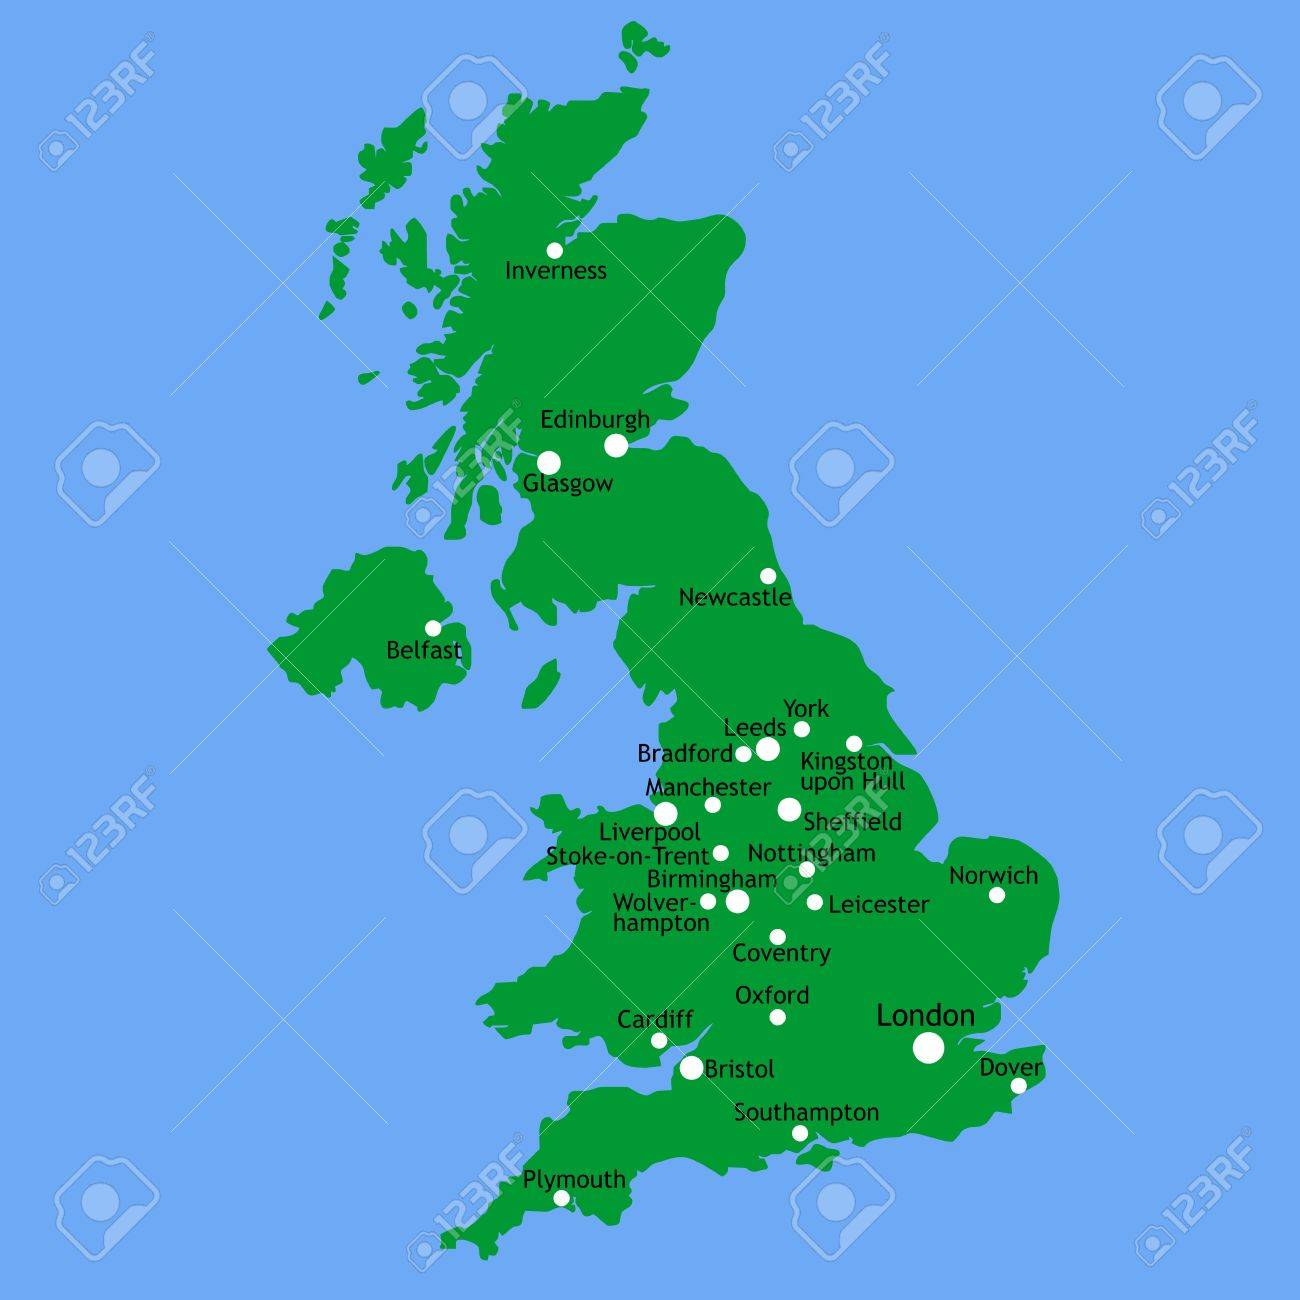 Map Of Uk Towns And Cities.Uk Map With Main Towns And Cities